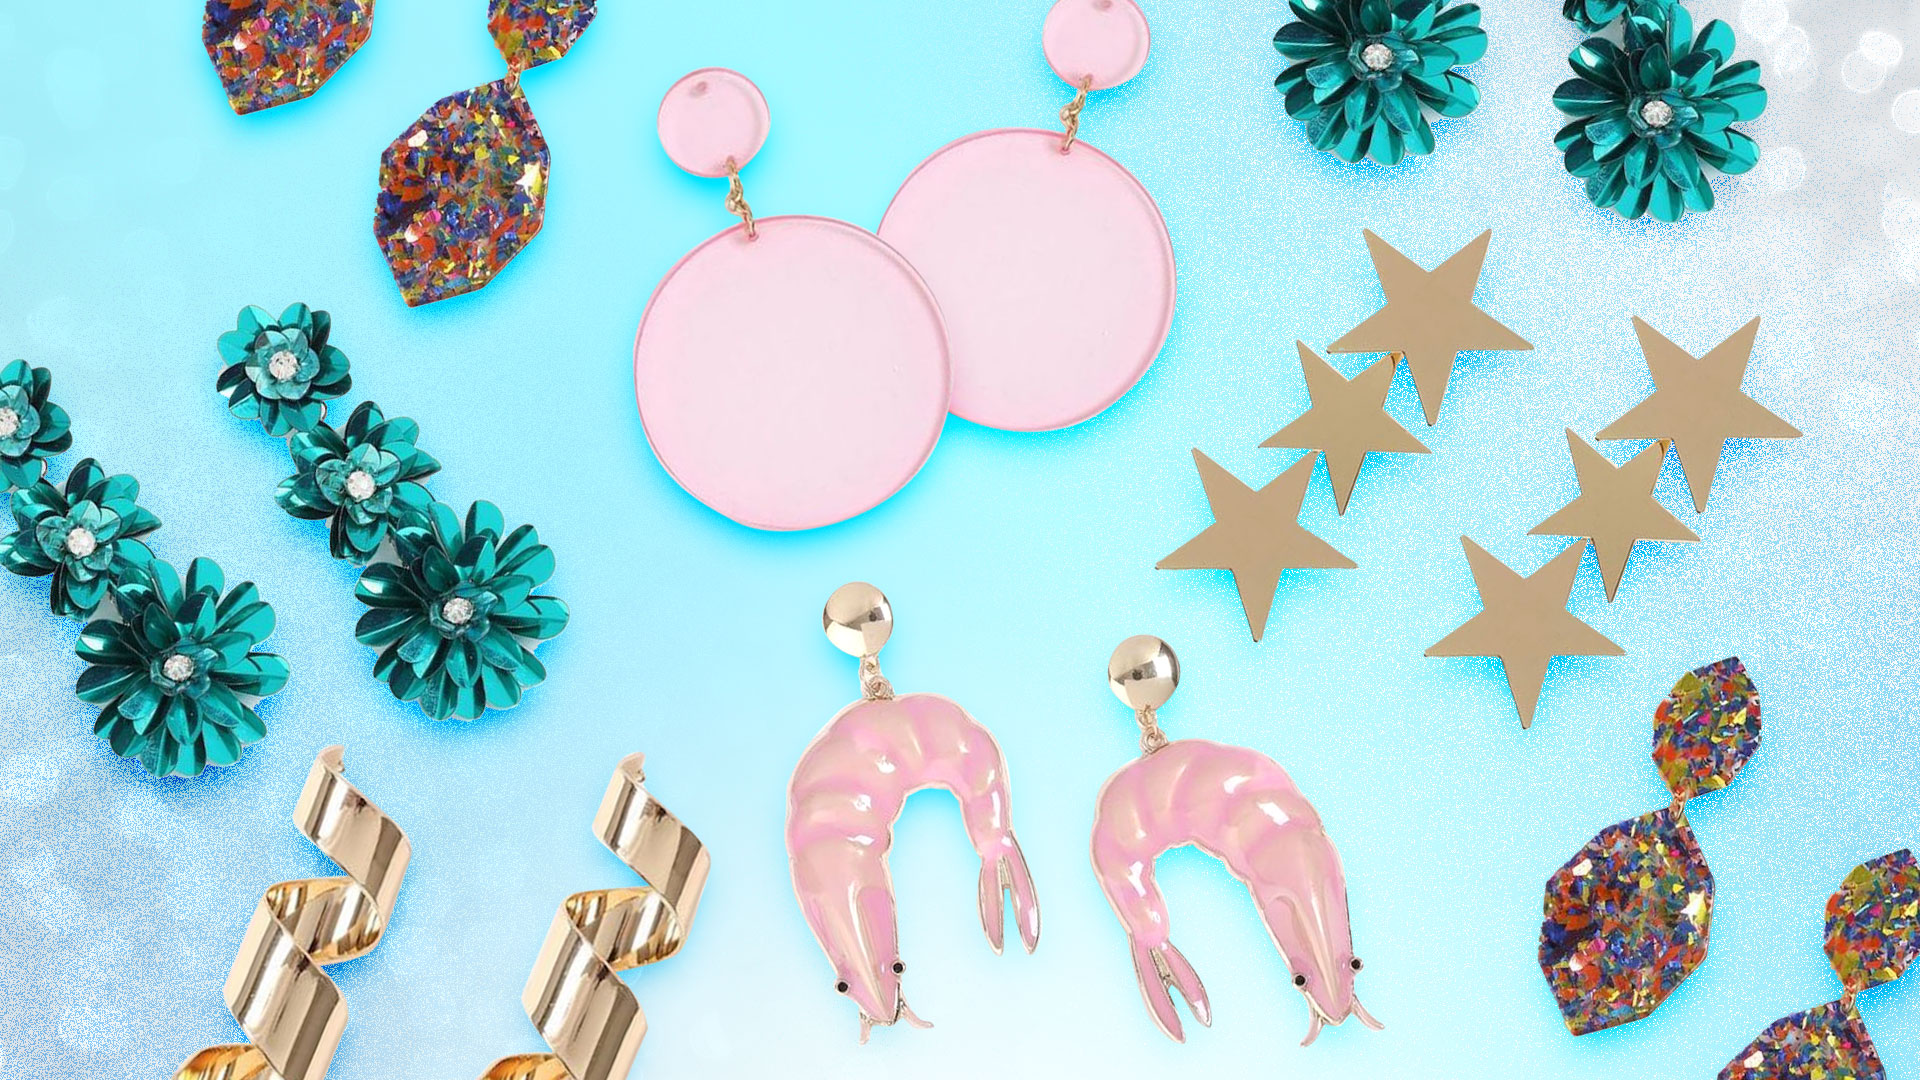 Topshop Has All Kinds of Kitschy Earrings on Offer Right Now